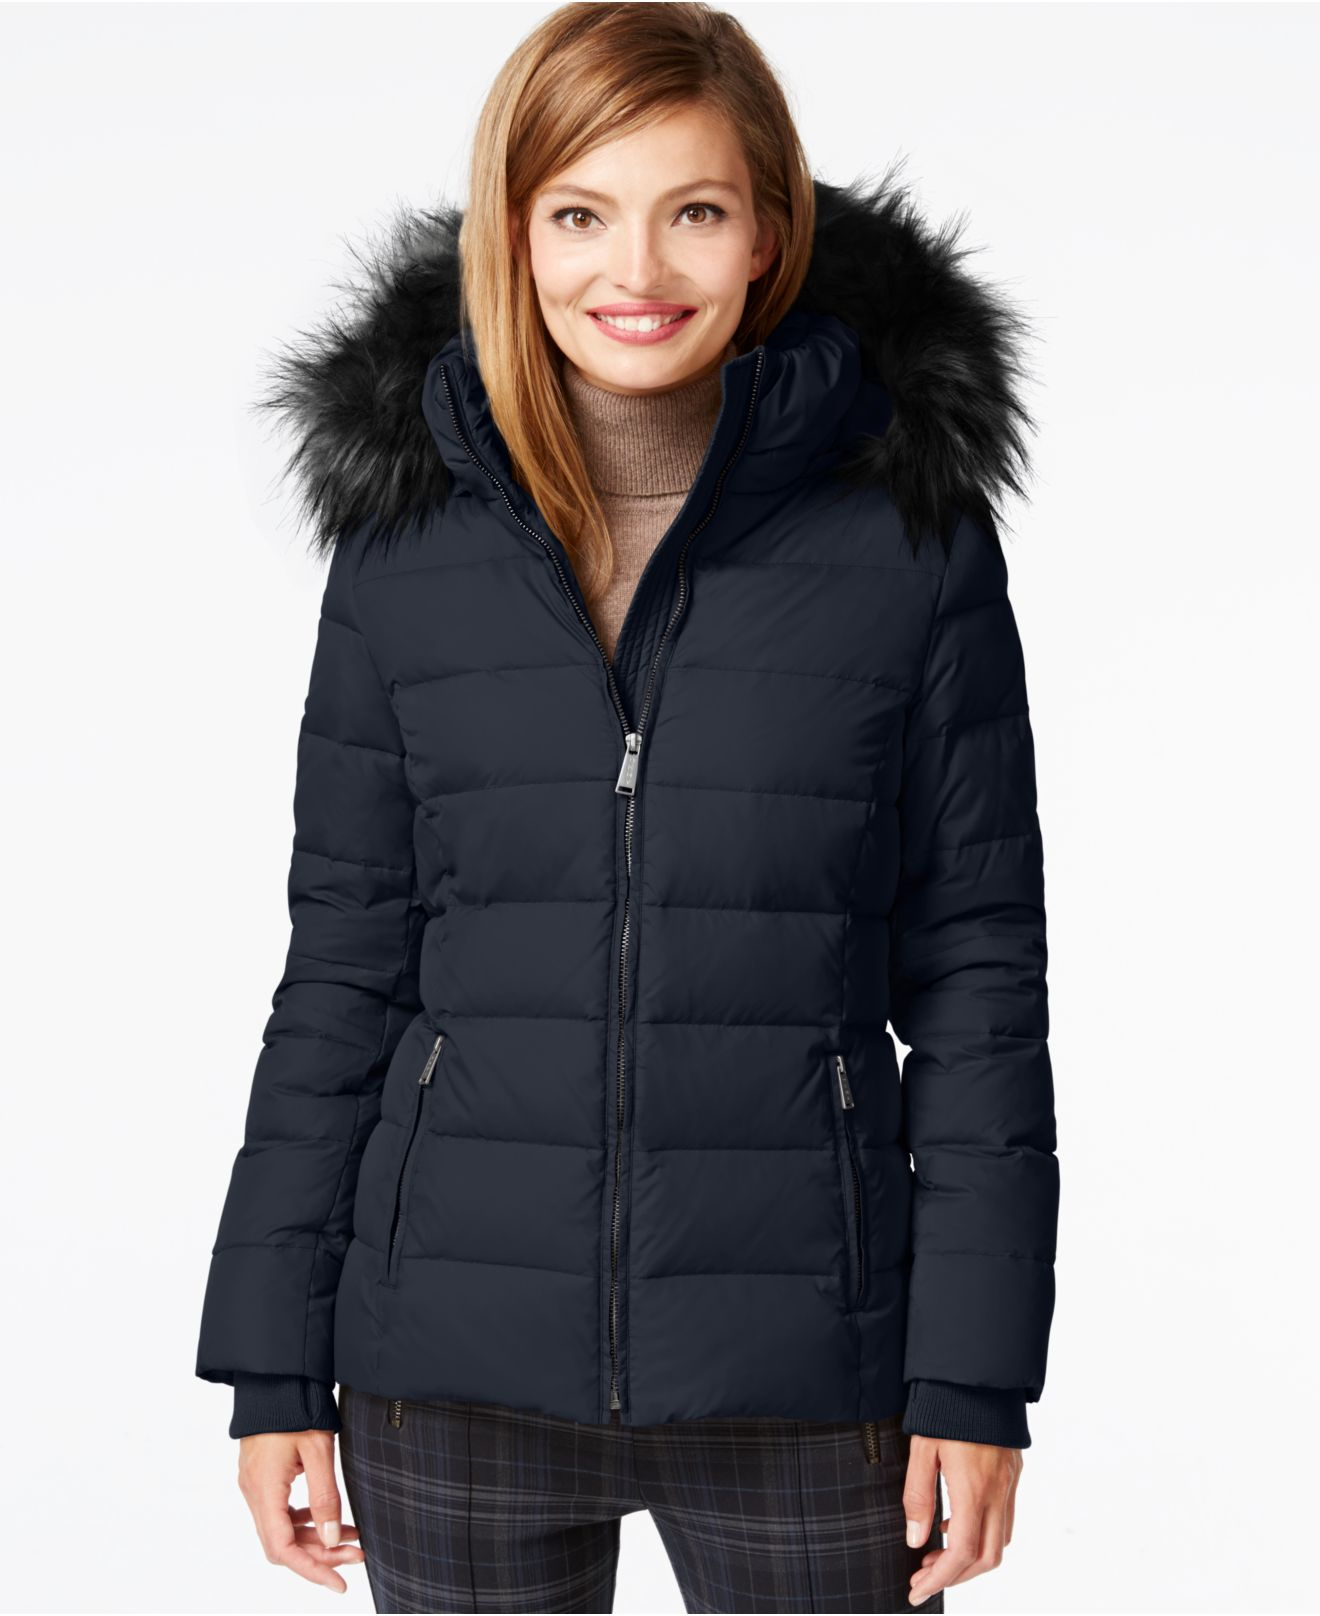 Dkny Hooded Down Puffer Parka Coat in Blue | Lyst